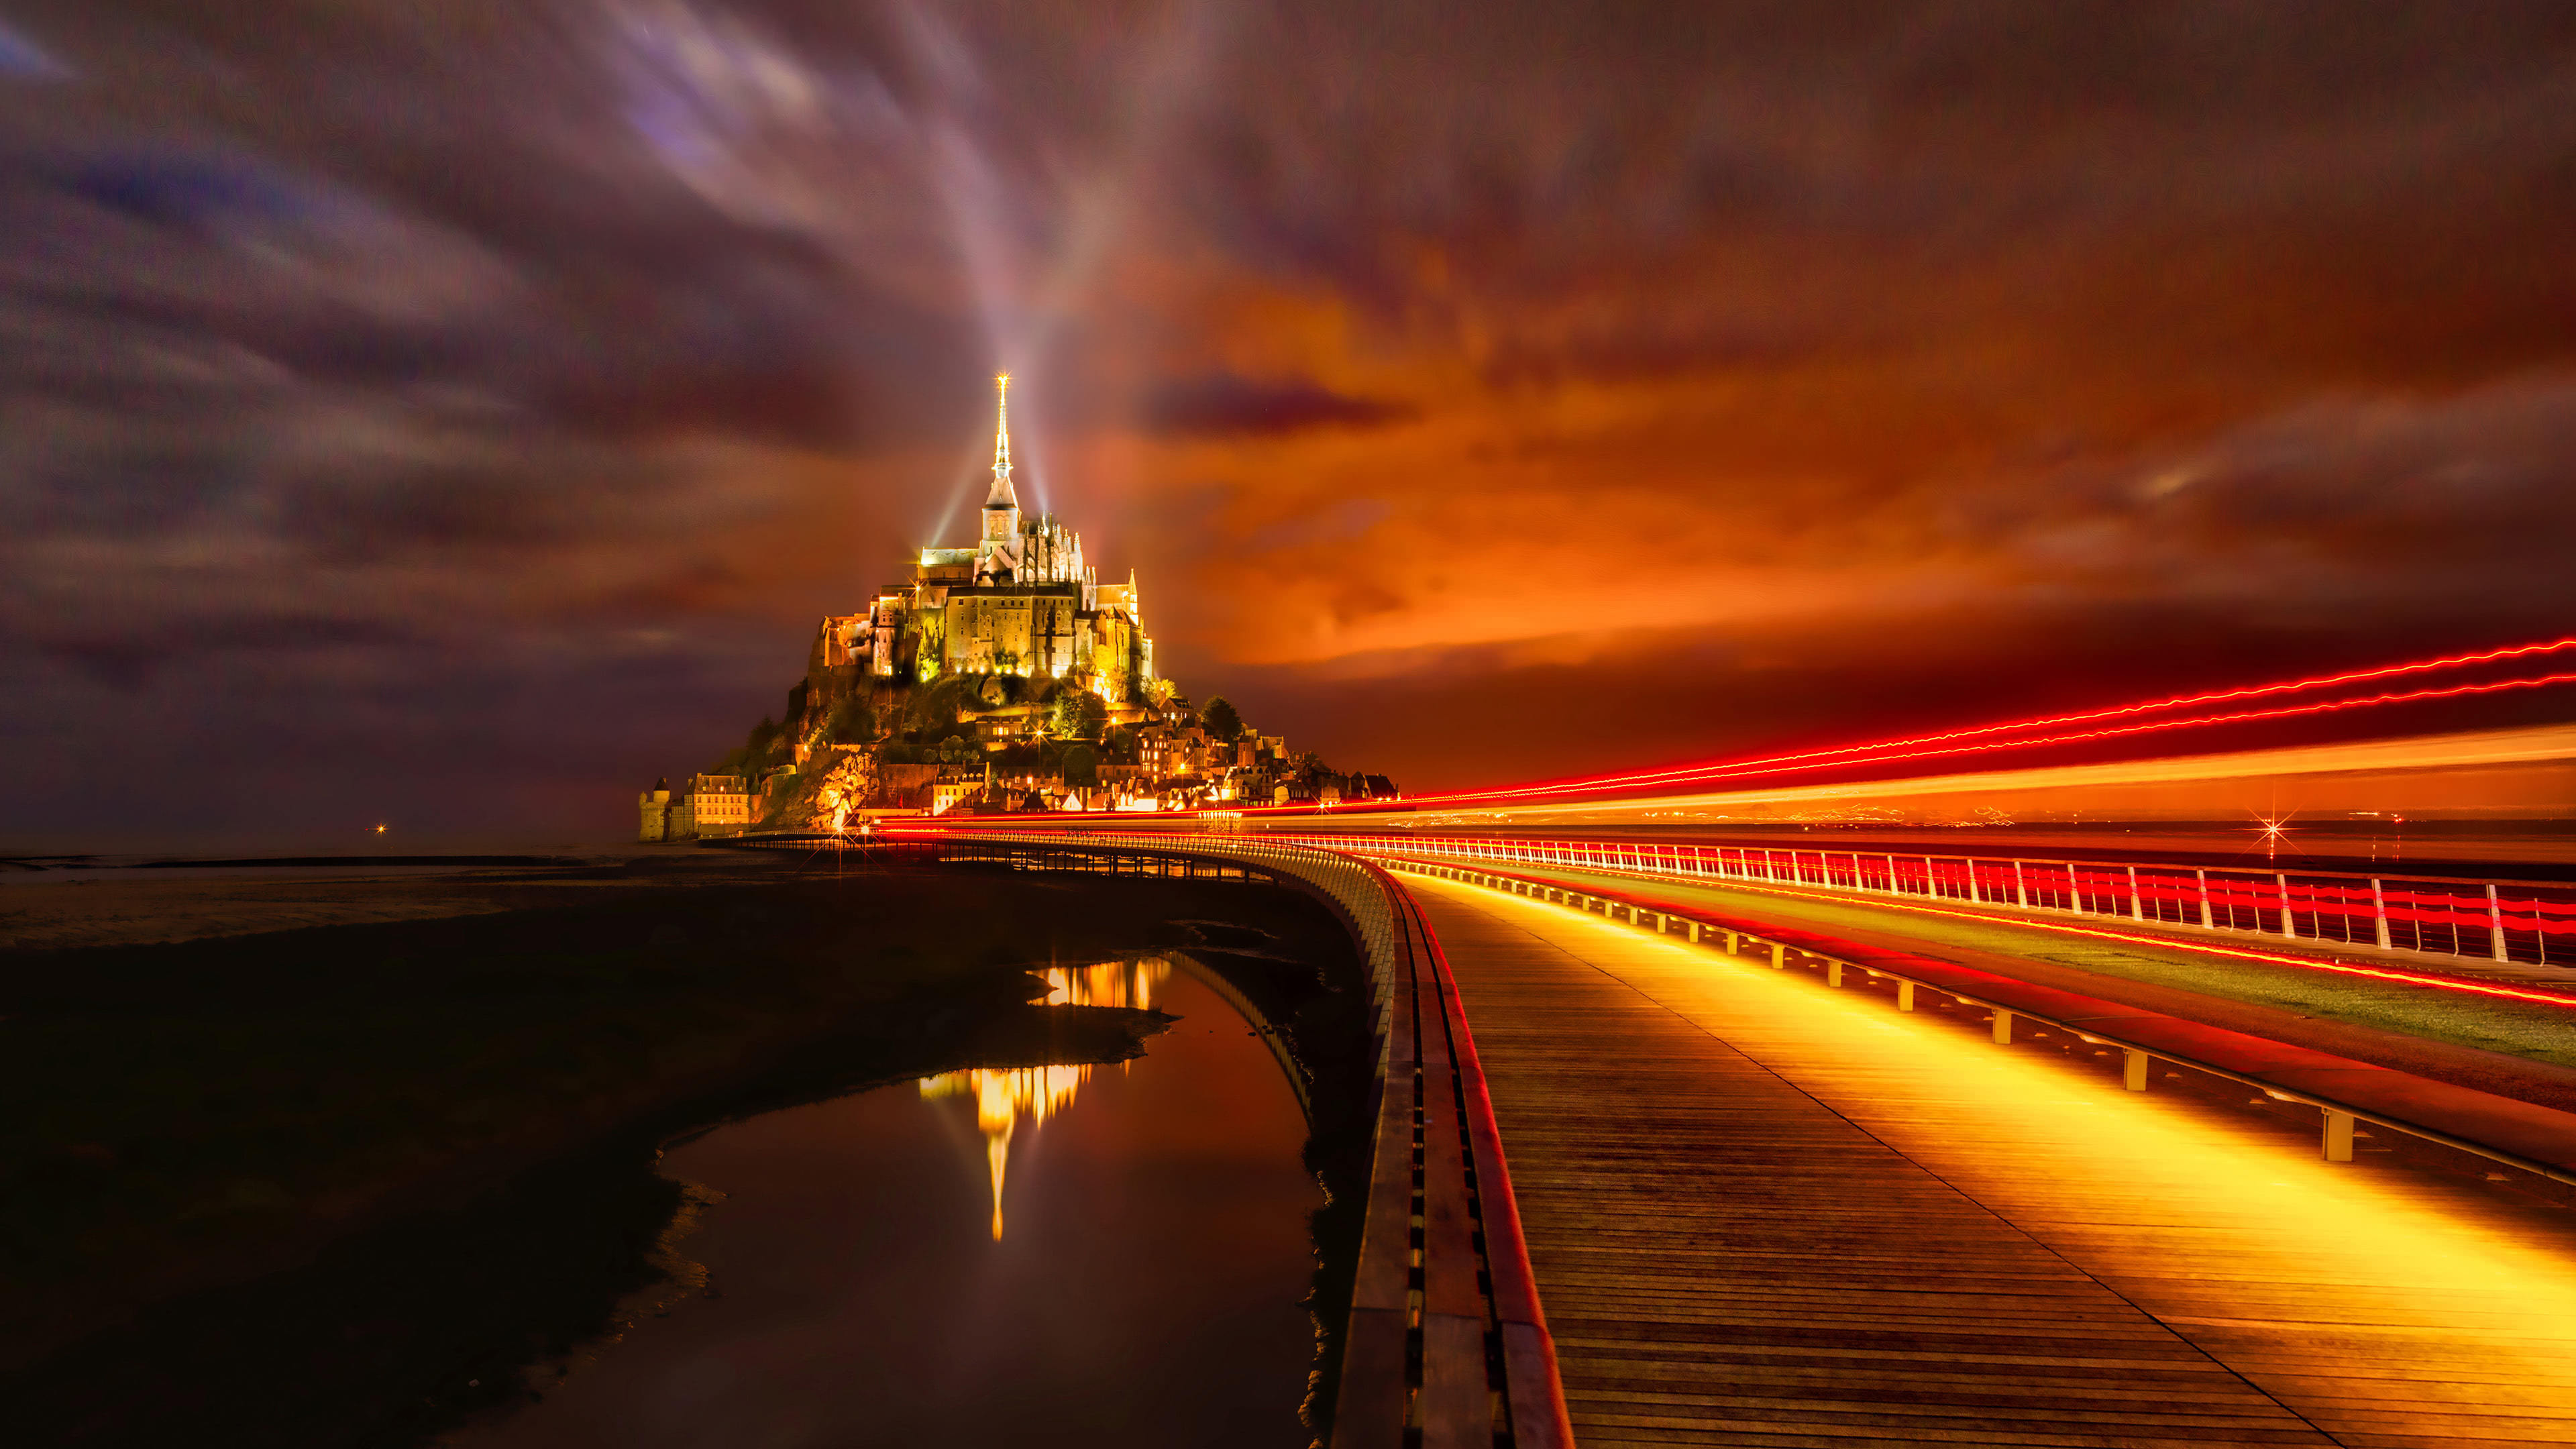 mont saint michel island night lights-normandy france uhd 4k wallpaper